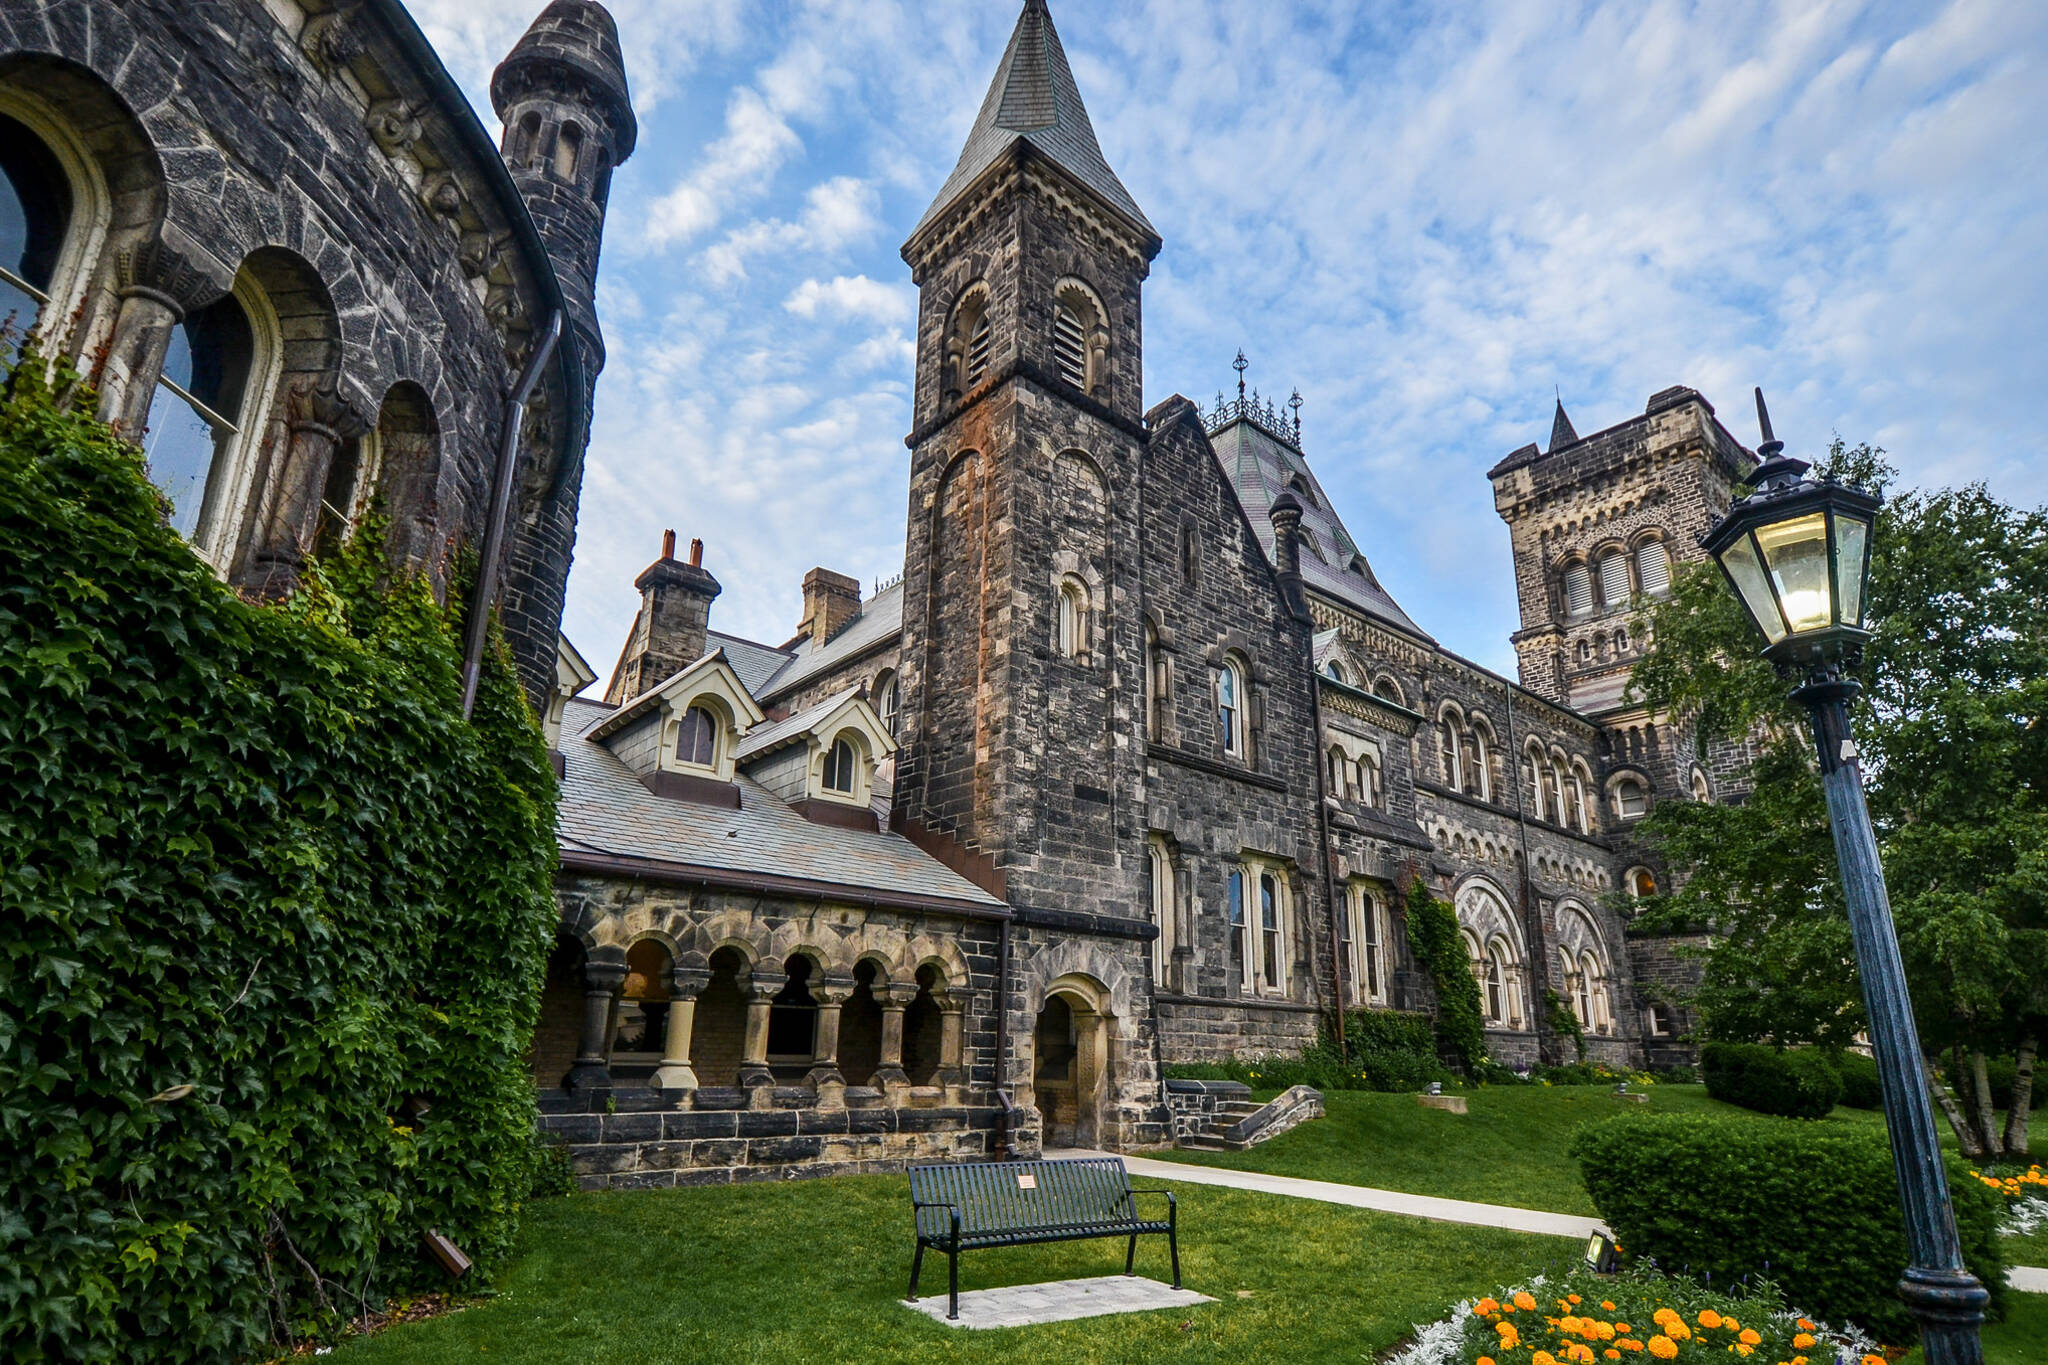 10 Quirky Things You Might Not Know About U Of T